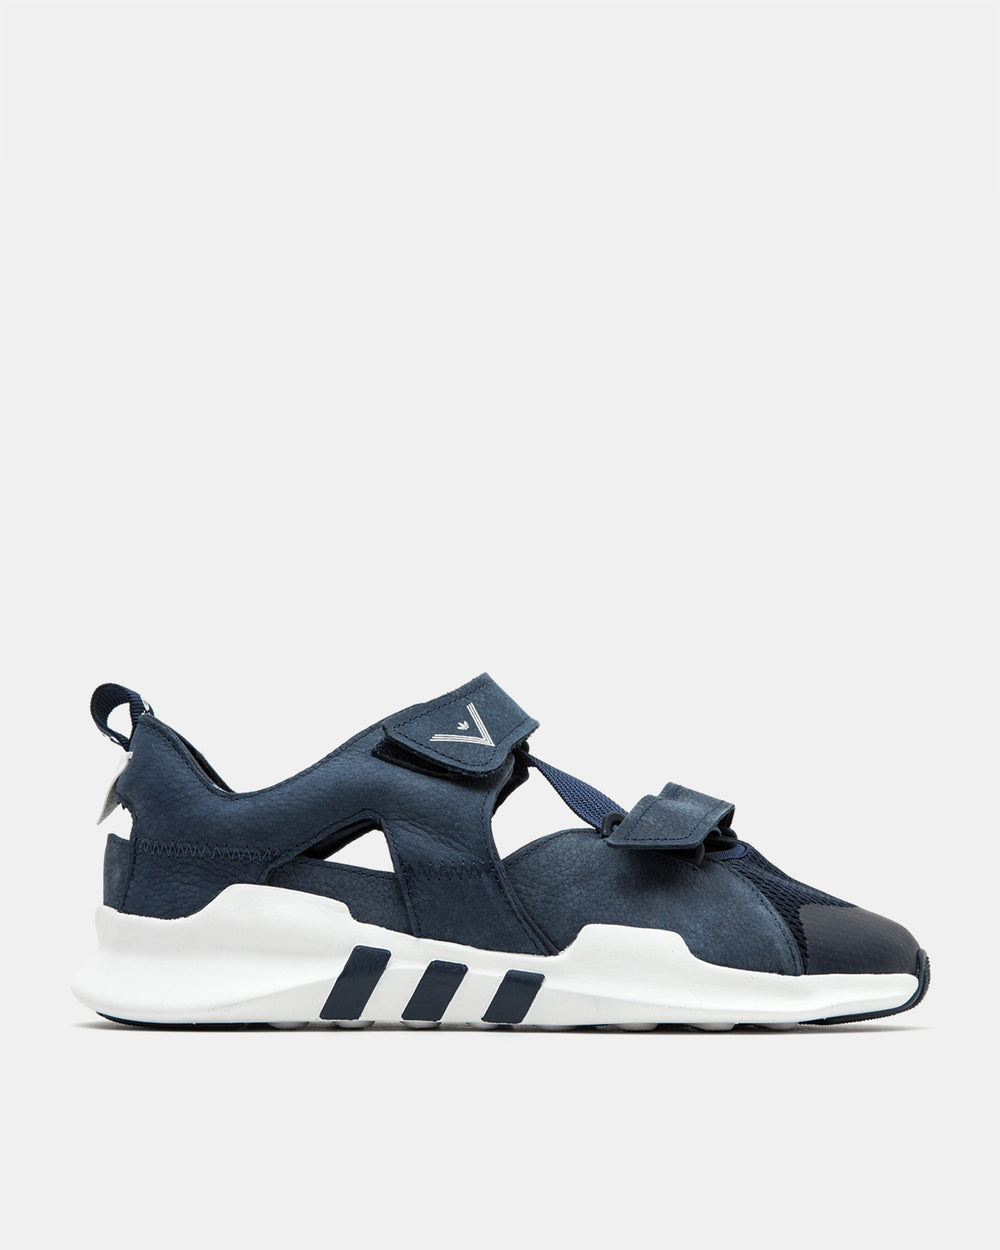 adidas - White Mountaineering ADV Sandals (Collegiate Navy | Footwear White)